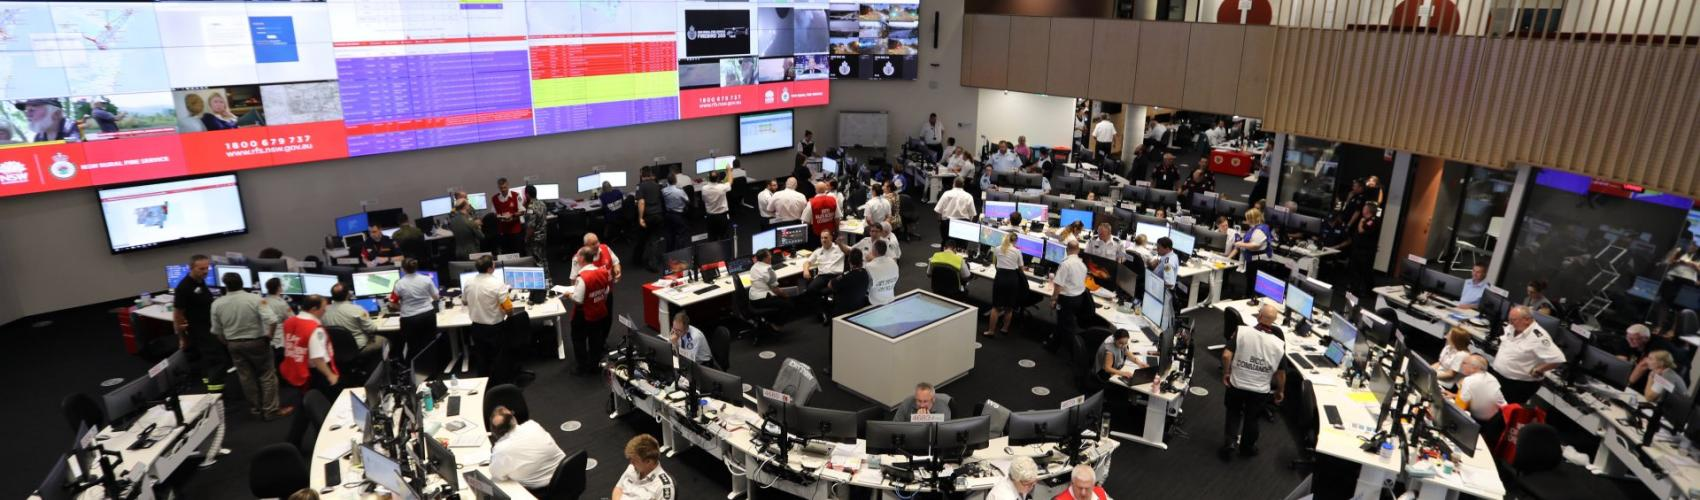 The New South Wales Rural Fire Service headquarters during the state's peak day. Photo: Anthony Clark, New South Wales RFS.